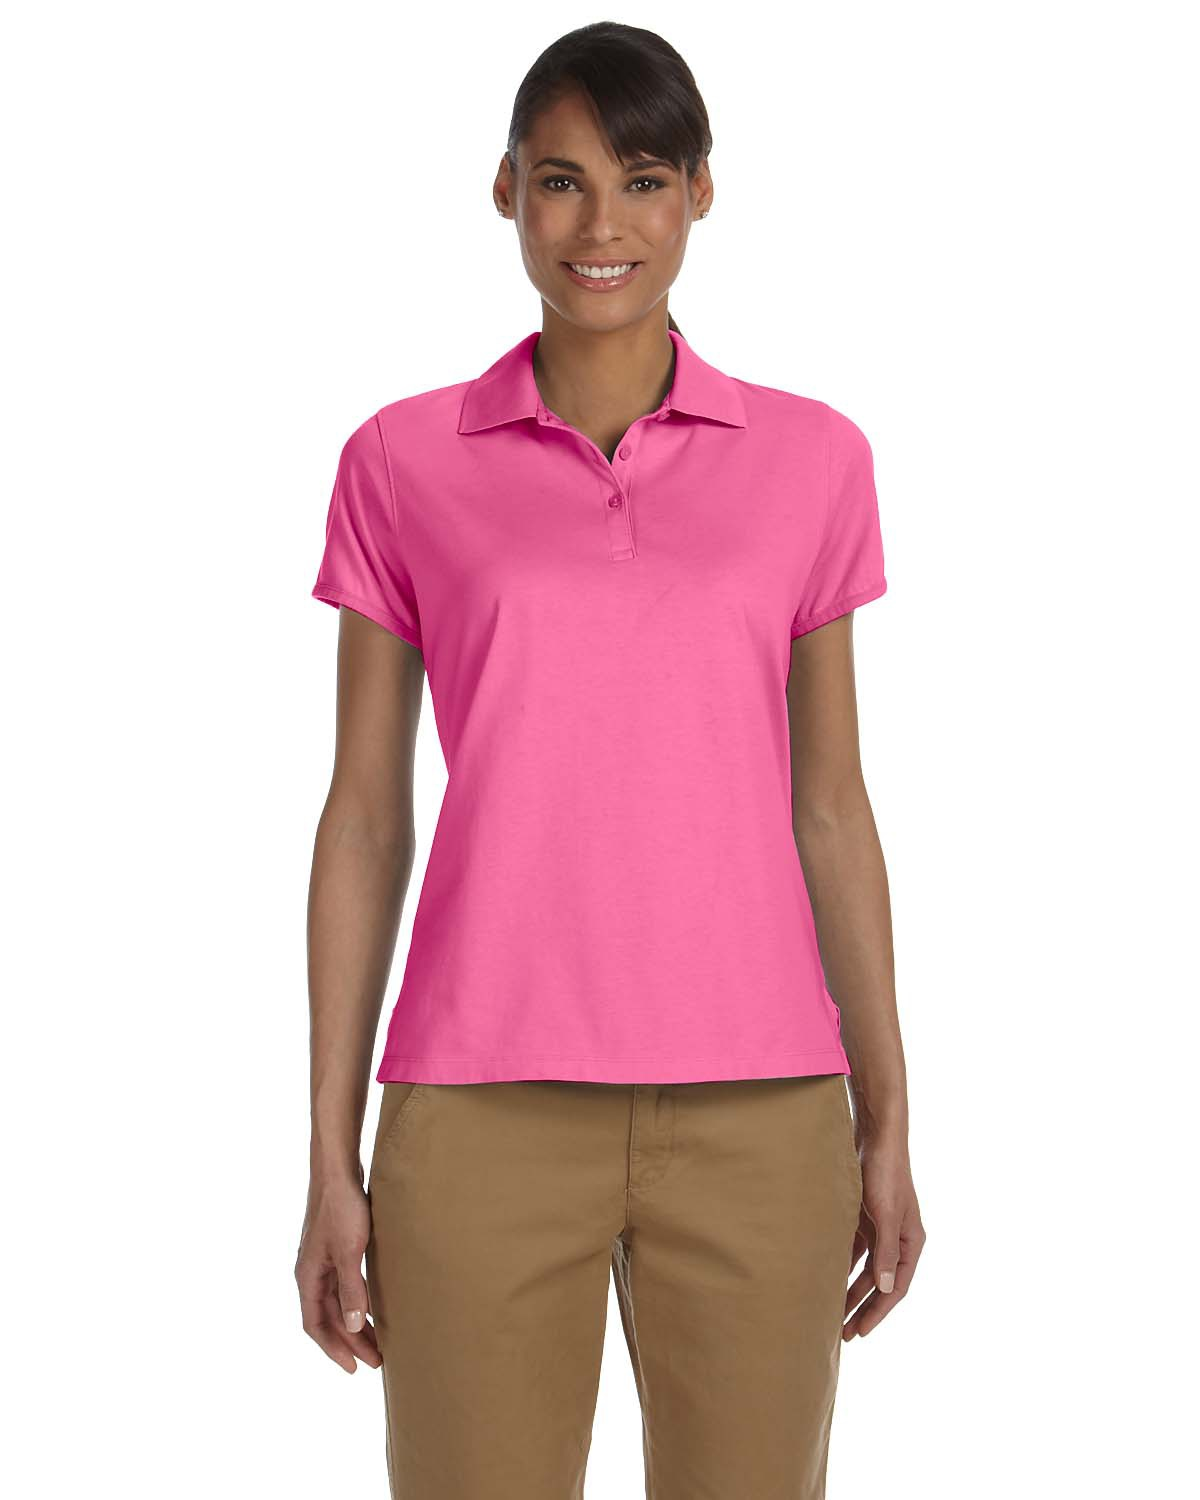 Chestnut Hill CH180W  Women's Performance Plus Jersey Polo